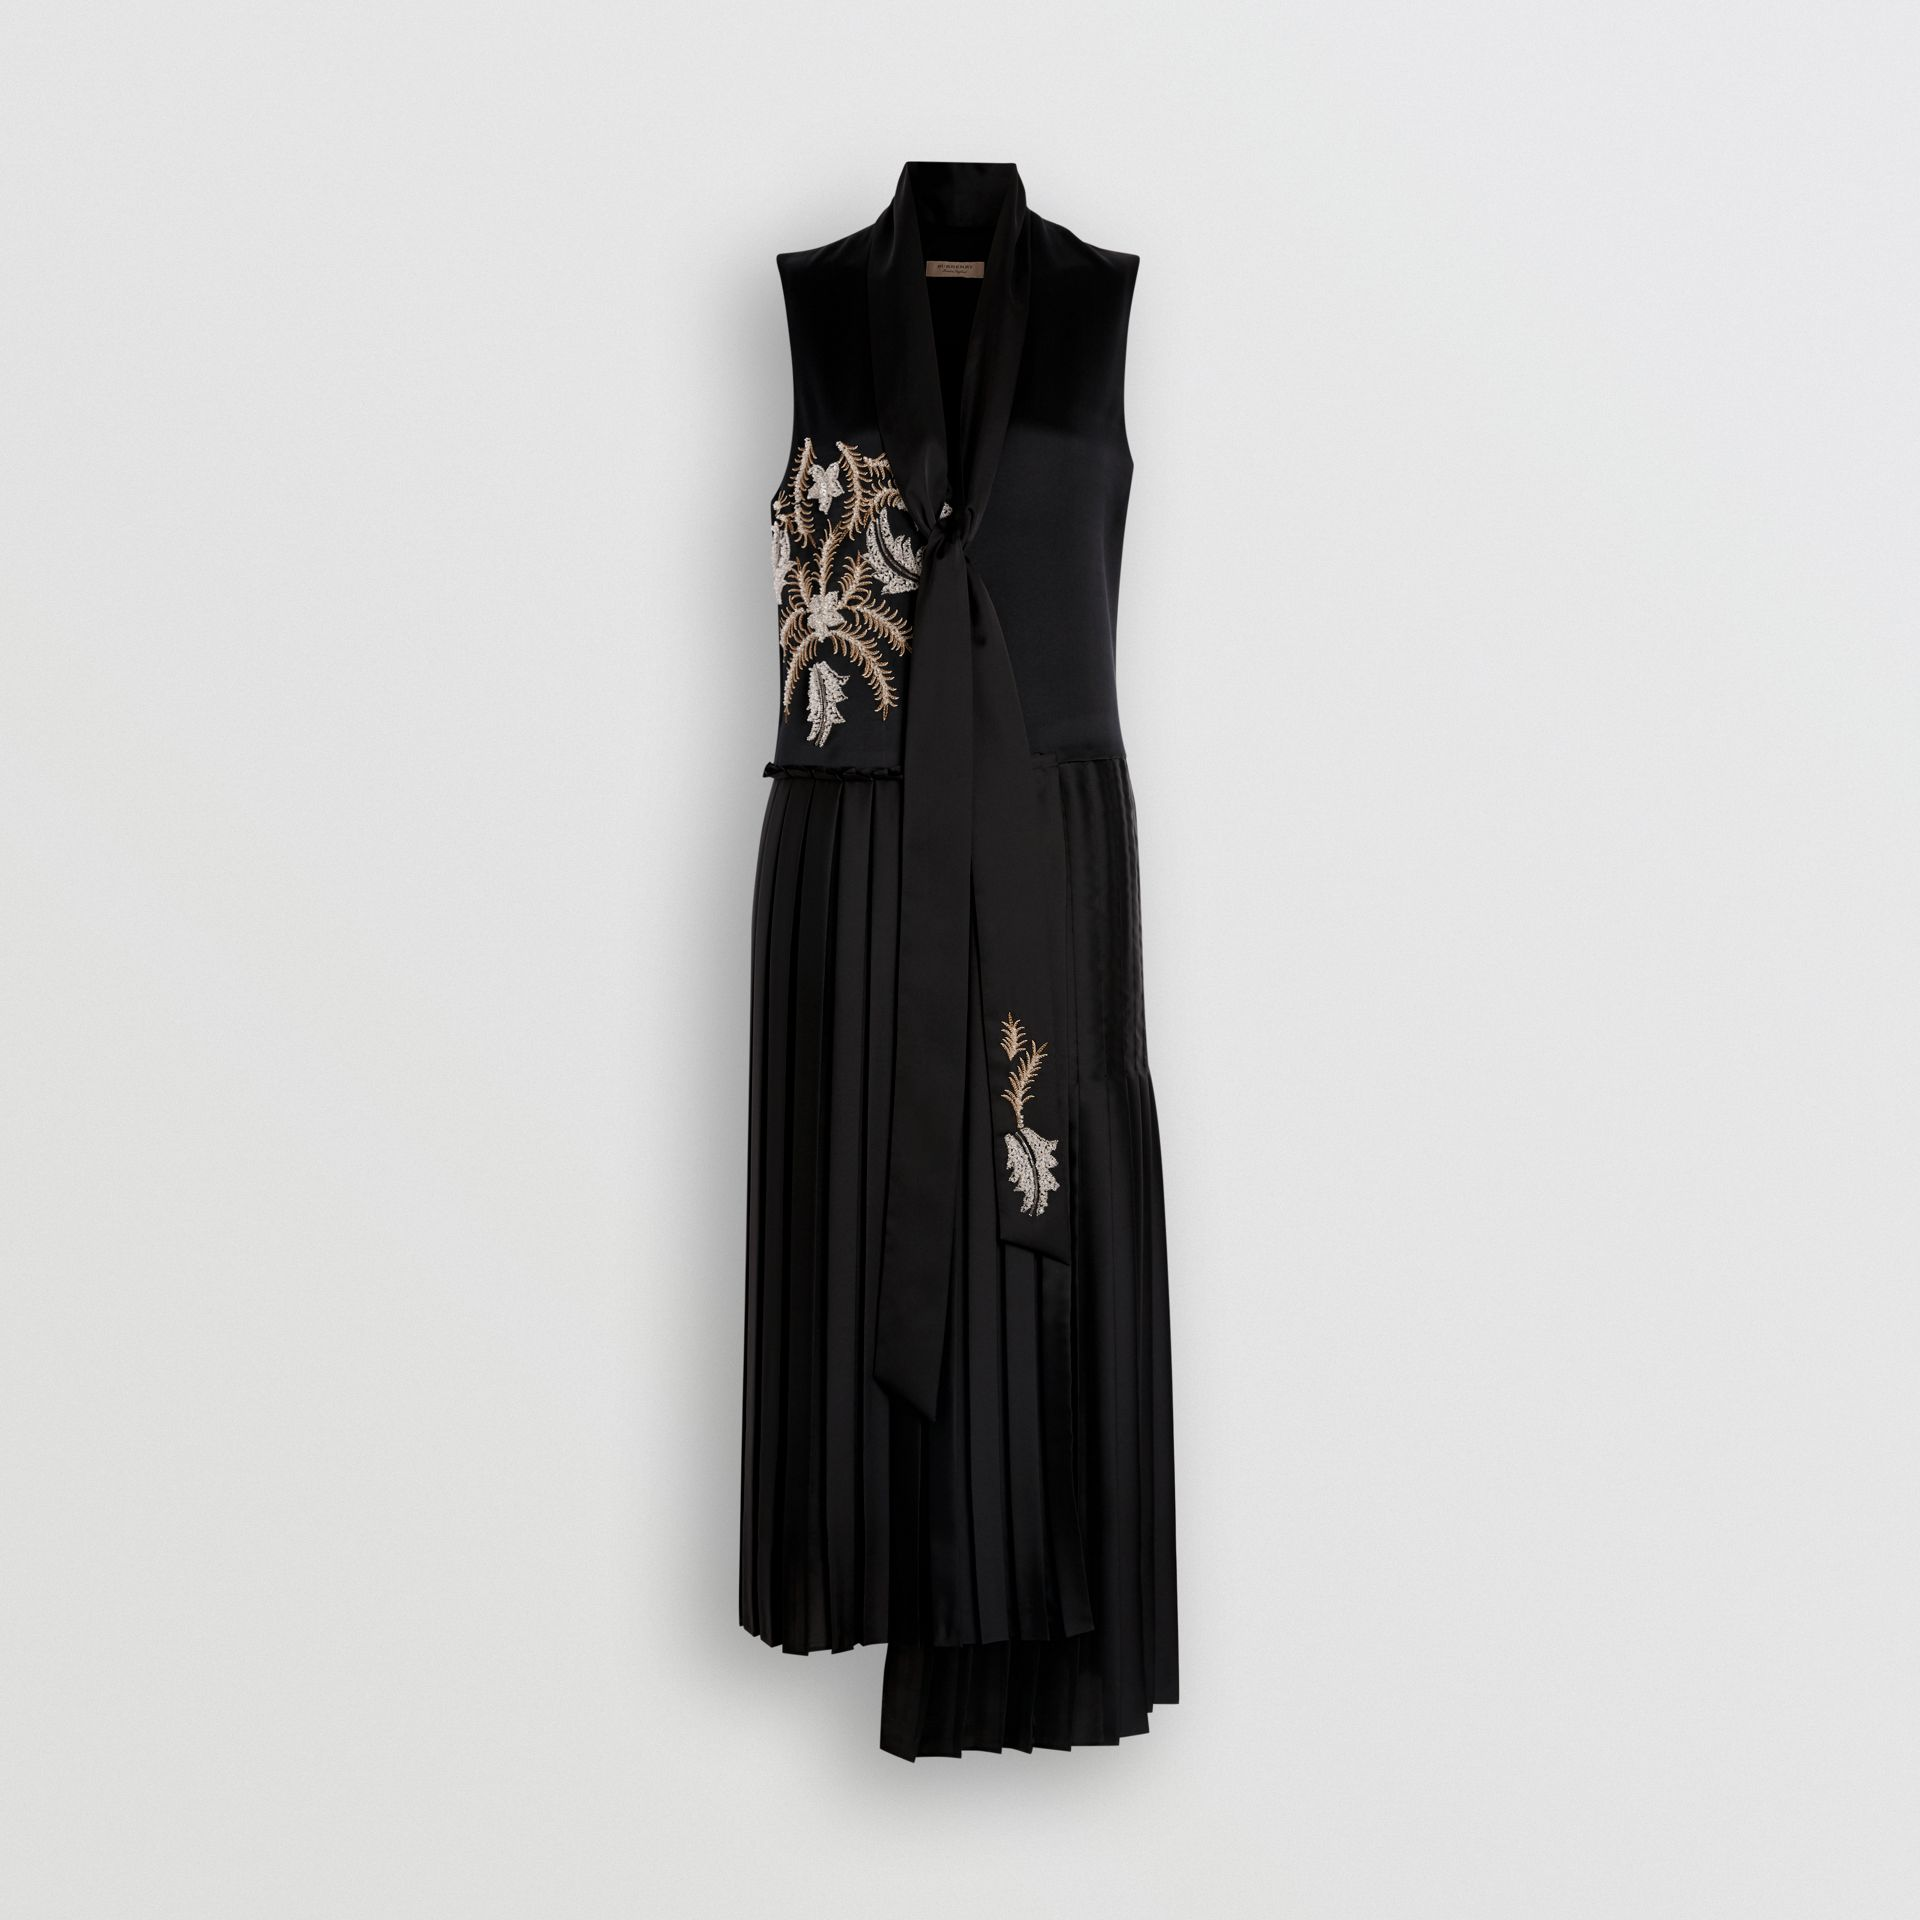 Bead-embellished Silk Satin Asymmetric Dress in Black - Women | Burberry - gallery image 3